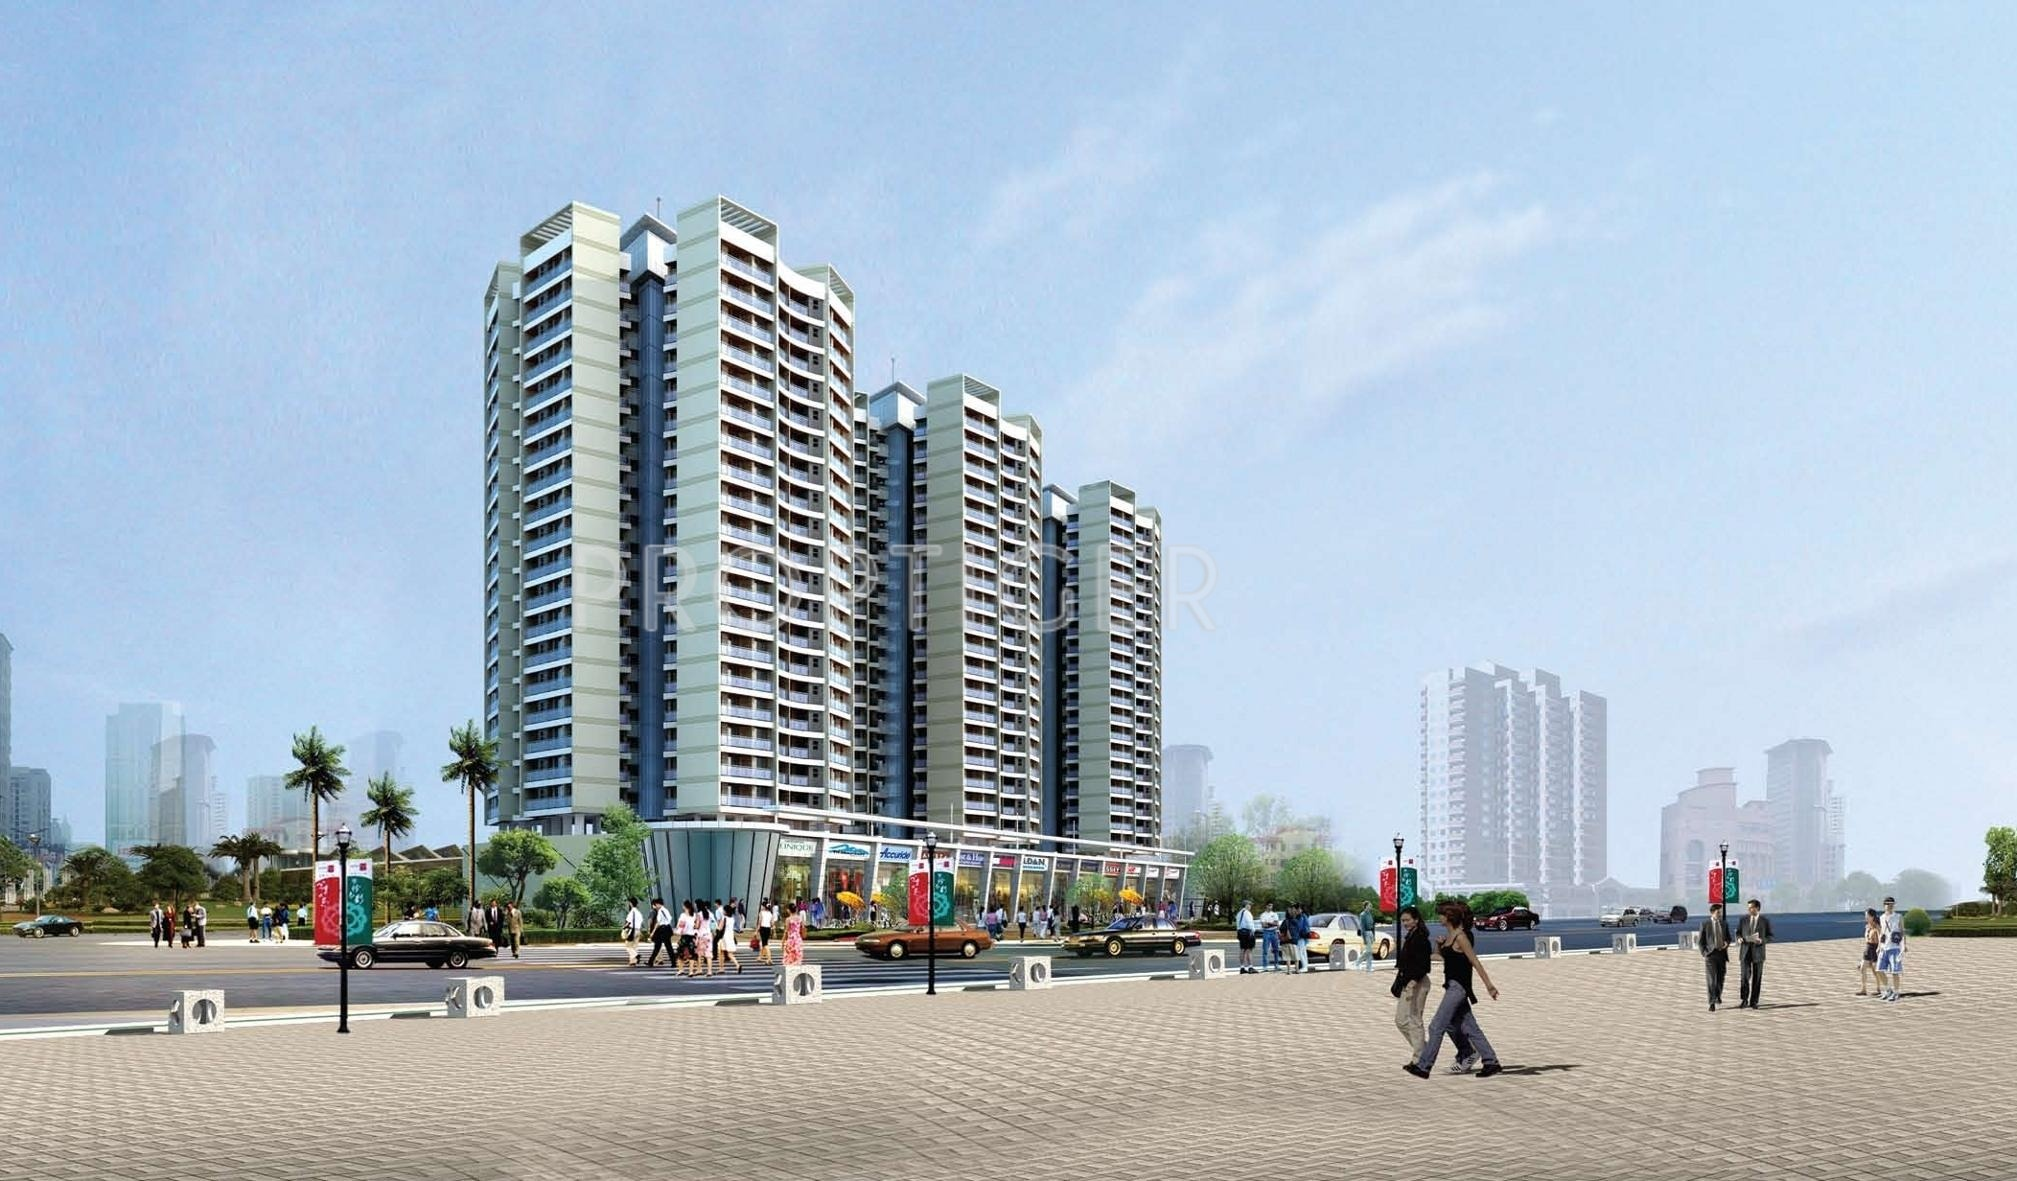 db realty orchid suburbia in kandivali west mumbai price